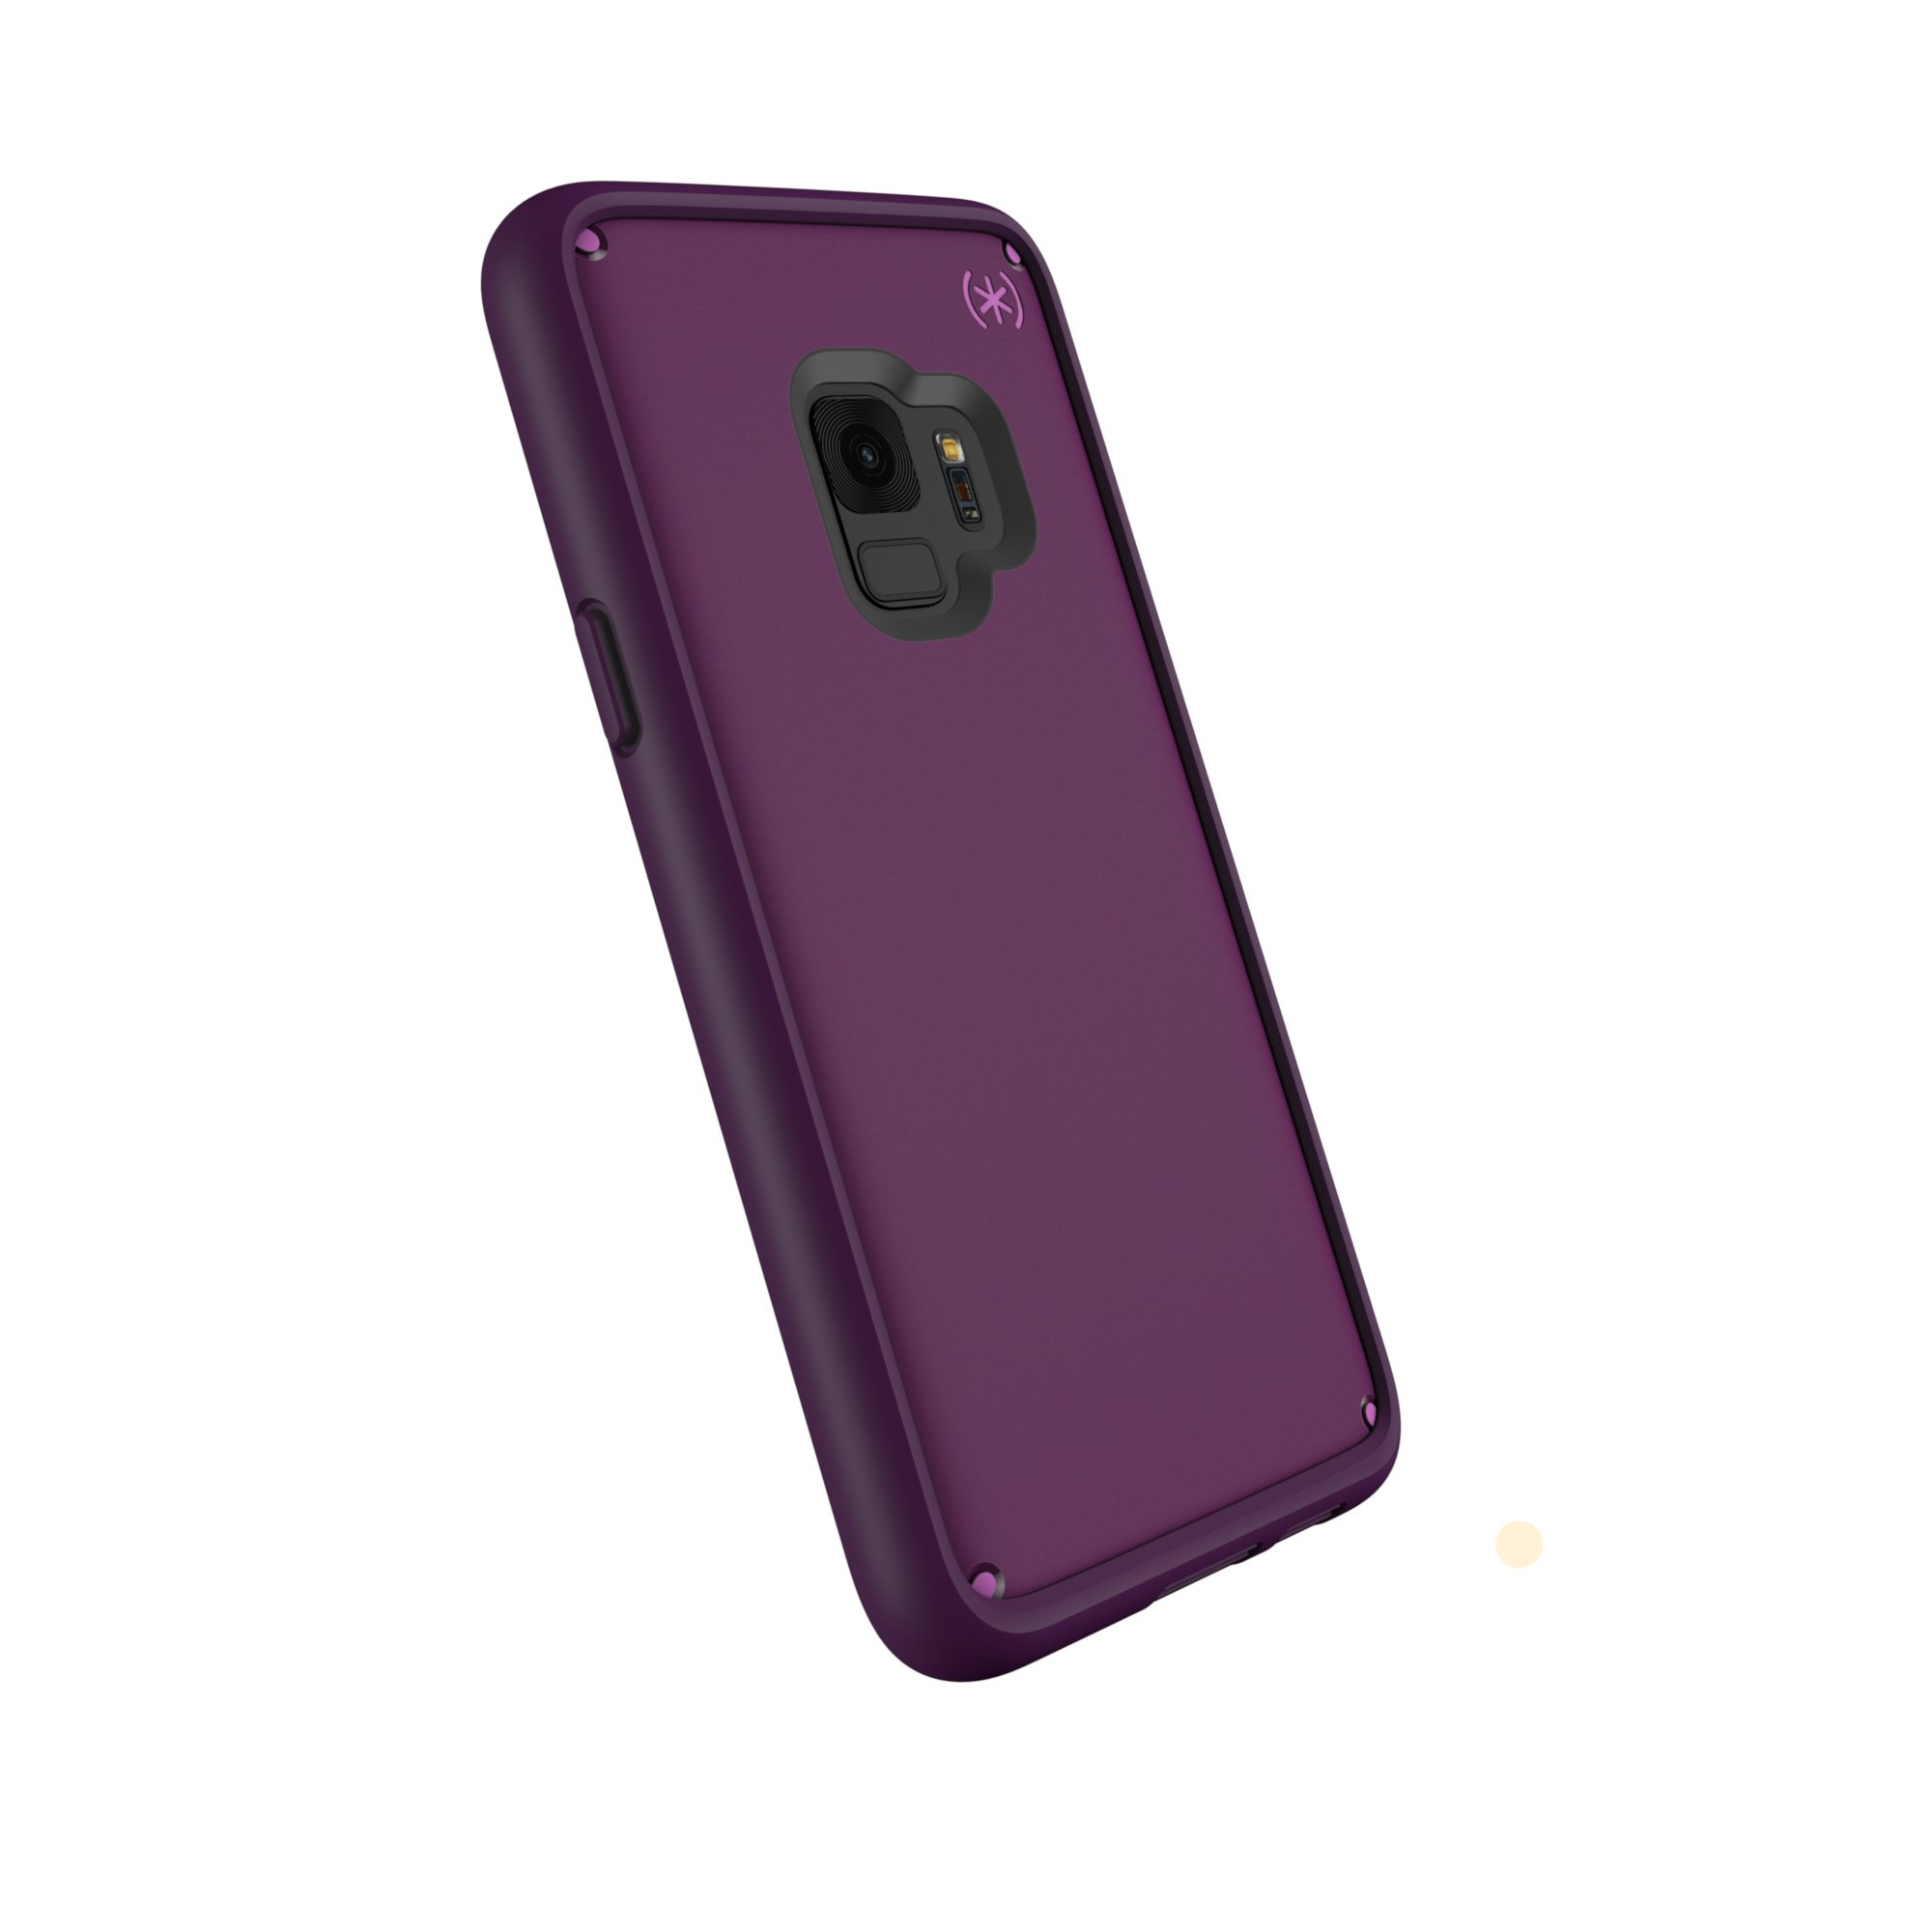 factory price e2d4e b8c63 Speck Products Compatible Phone Case for Samsung Galaxy S9, Presidio Ultra  Case, Mangosteen Purple/Hibiscus Pink/Eggplant Purple